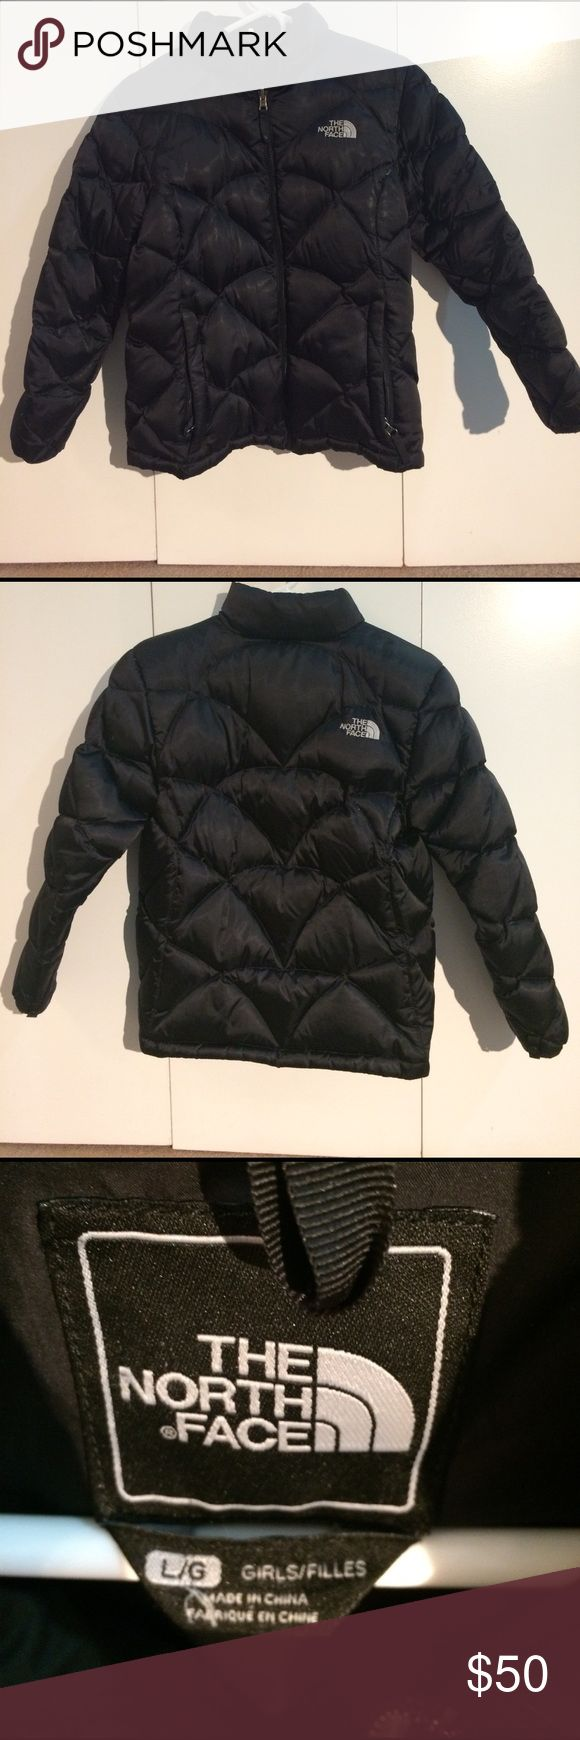 North face puffer winter coat youth L girls North face winter jacket in great condition. Youth L but fits like a woman's small North Face Jackets & Coats Puffers